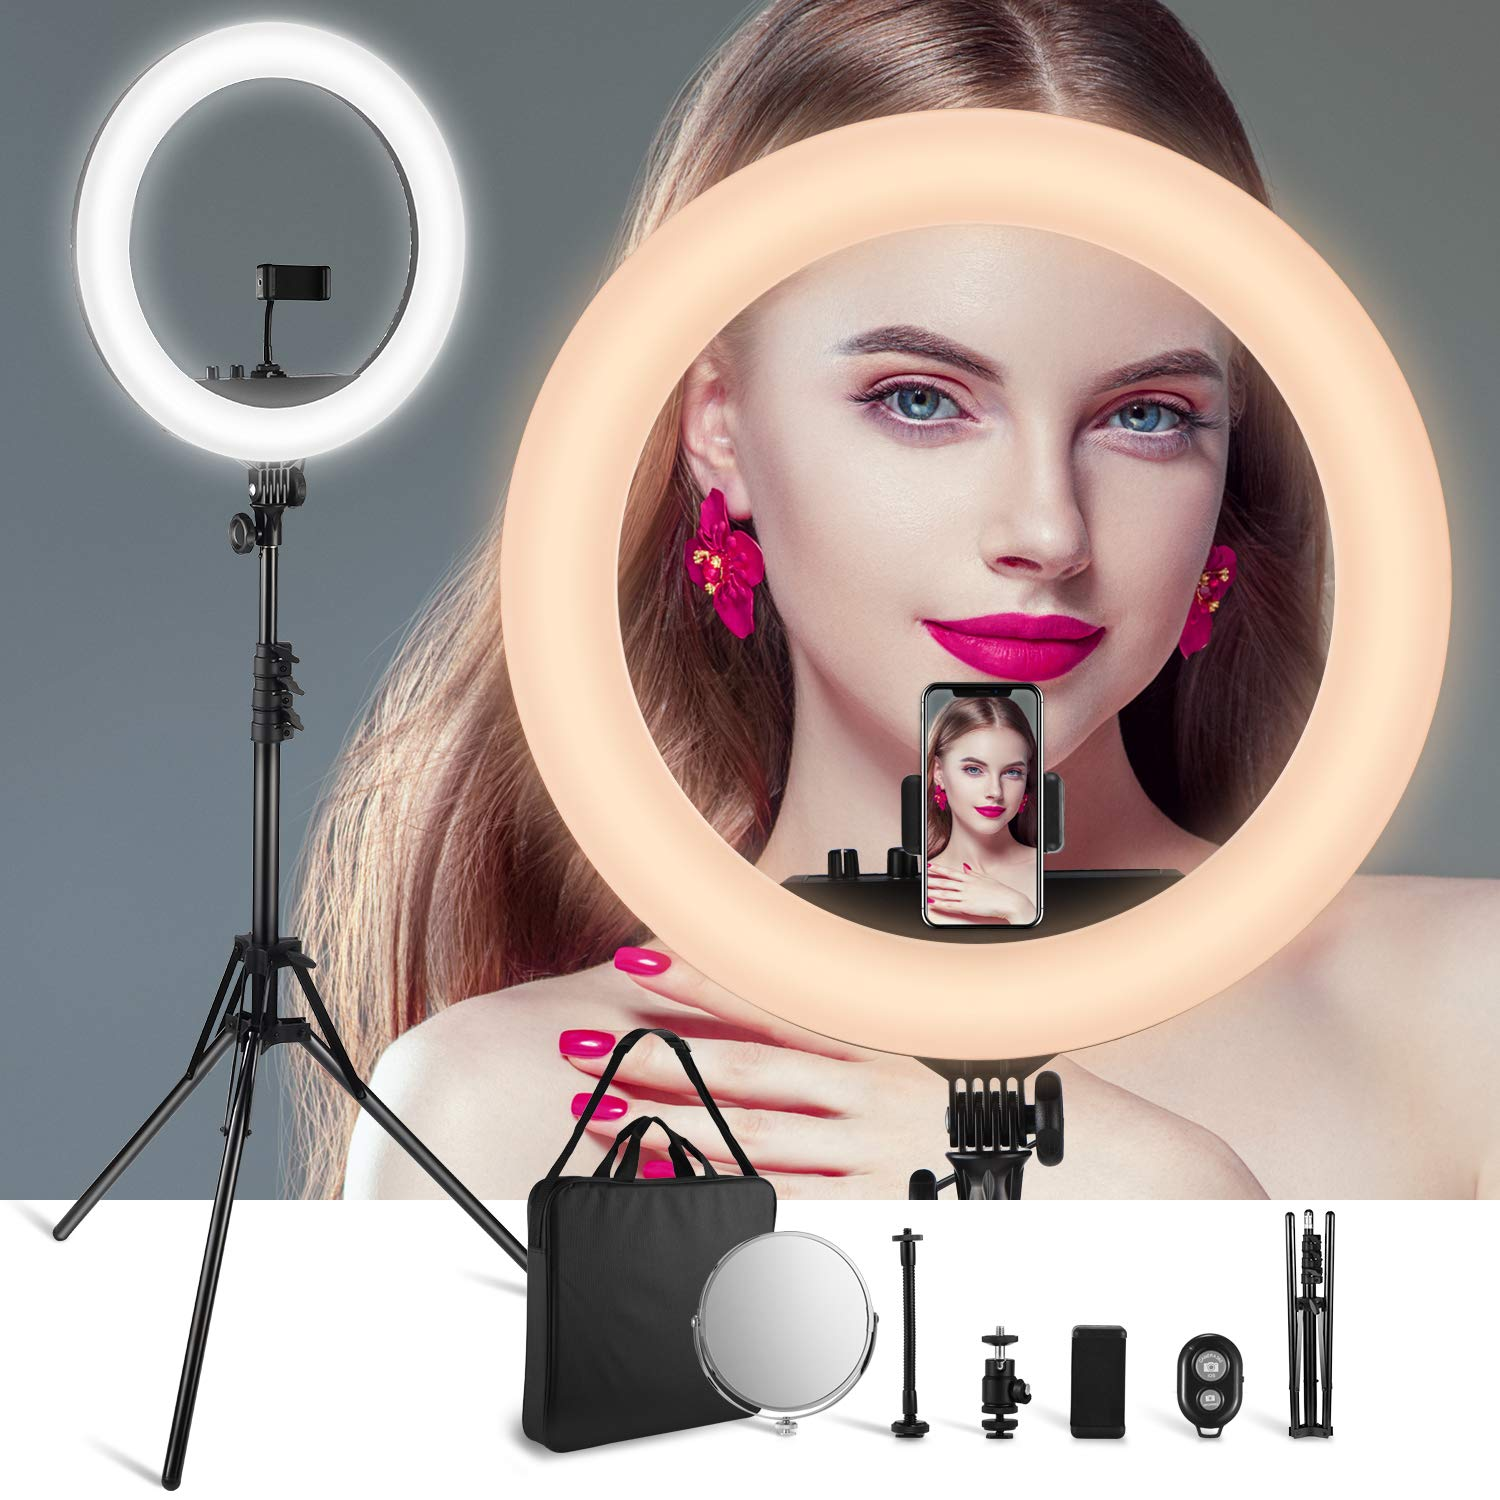 VicTsing LED Ring Light with Color Adjustment Knobs, 18'' Dimmable Ring Light 3200-5600K with 512pcs LED Chips, Make-up Mirror, Tripod, Carrying Bag, etc. for Video Shooting, Portrait, 2019 Upgraded